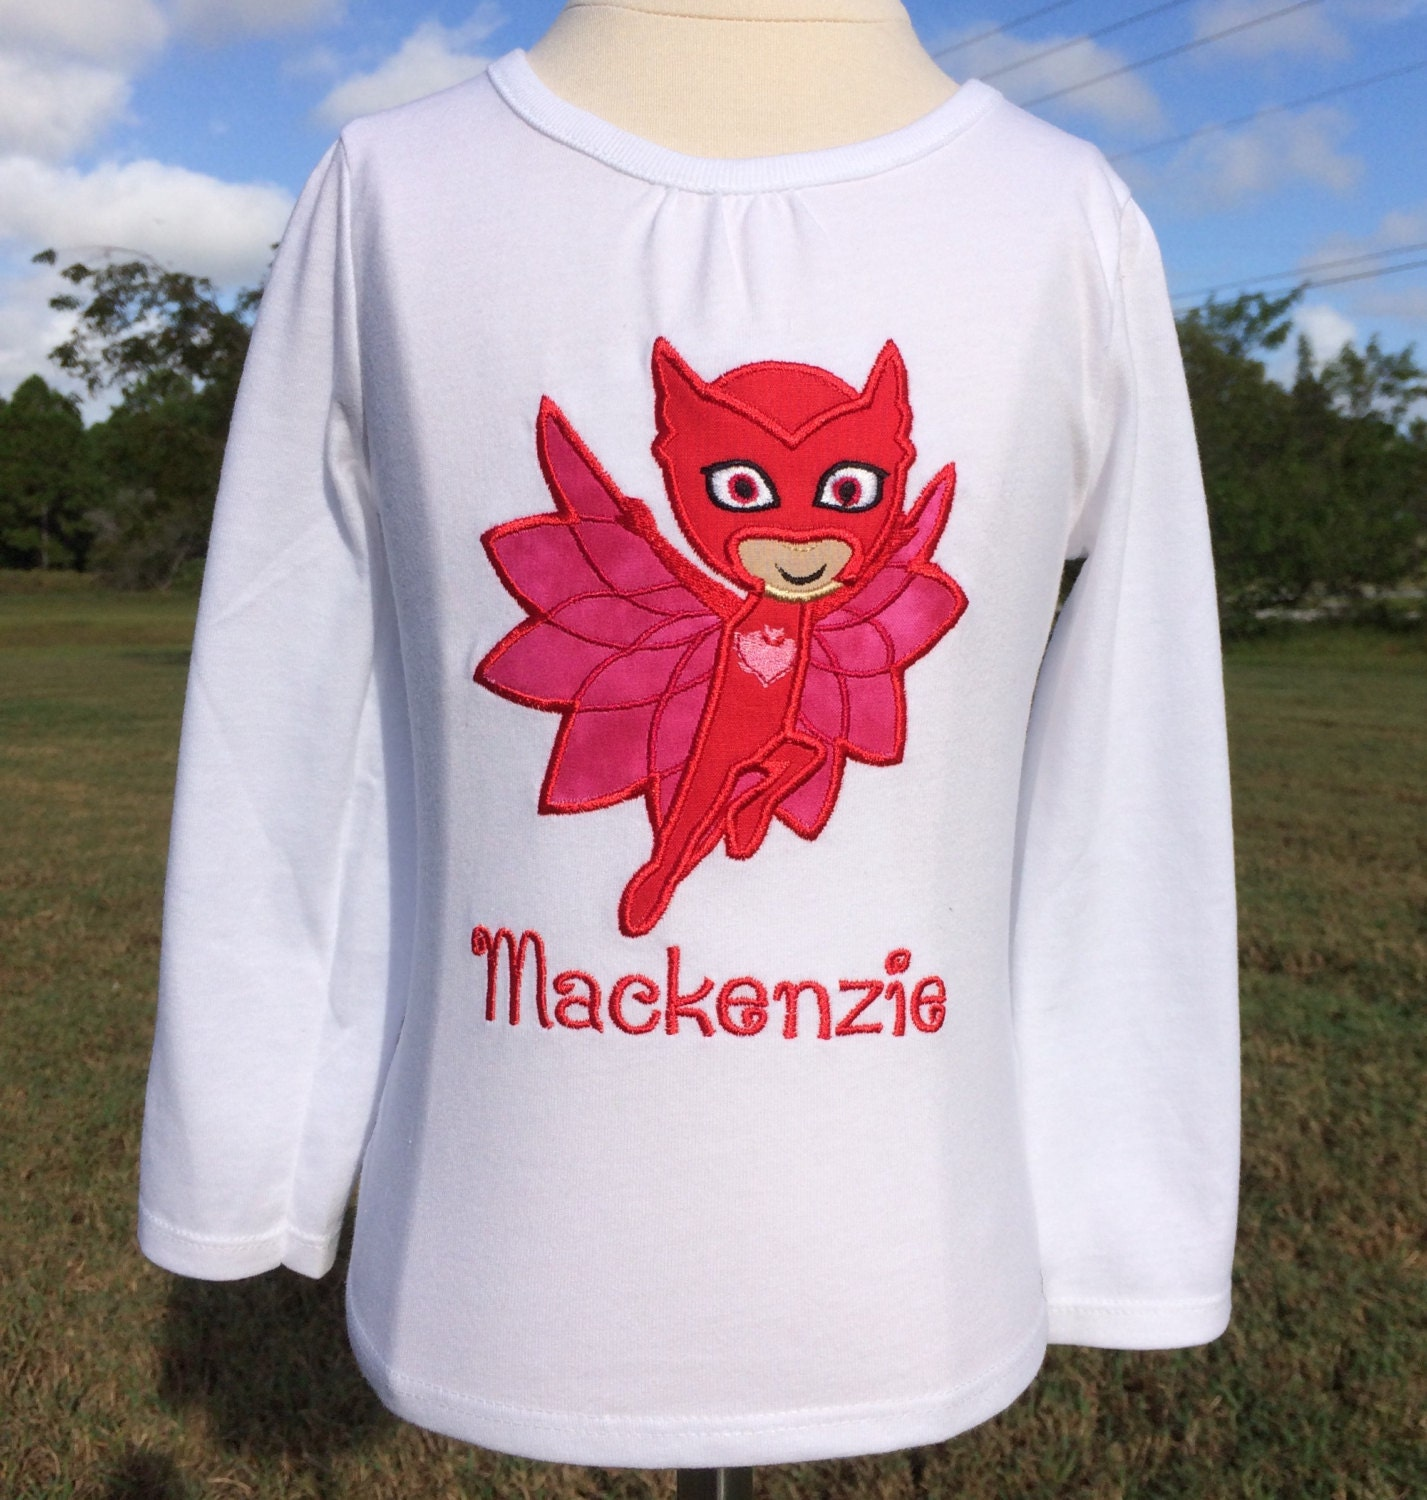 Design your own t shirt mumbai - Pj Masks Owlette Personalized Embroidered Bodysuit Or T Shirt